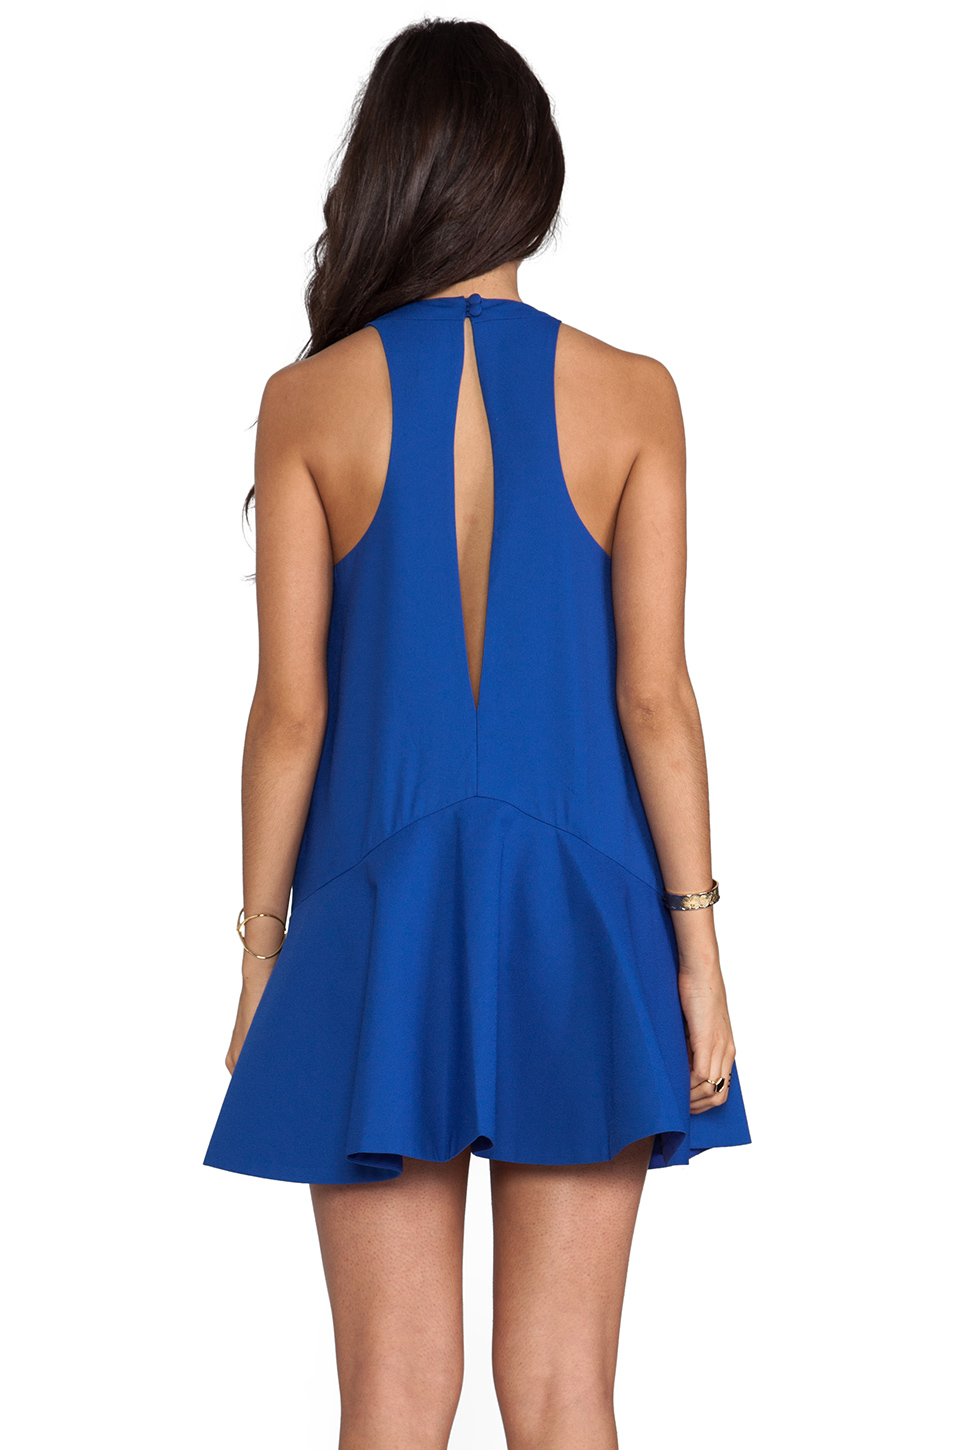 Cameo Bless This Mess Dress in Pacific Blue